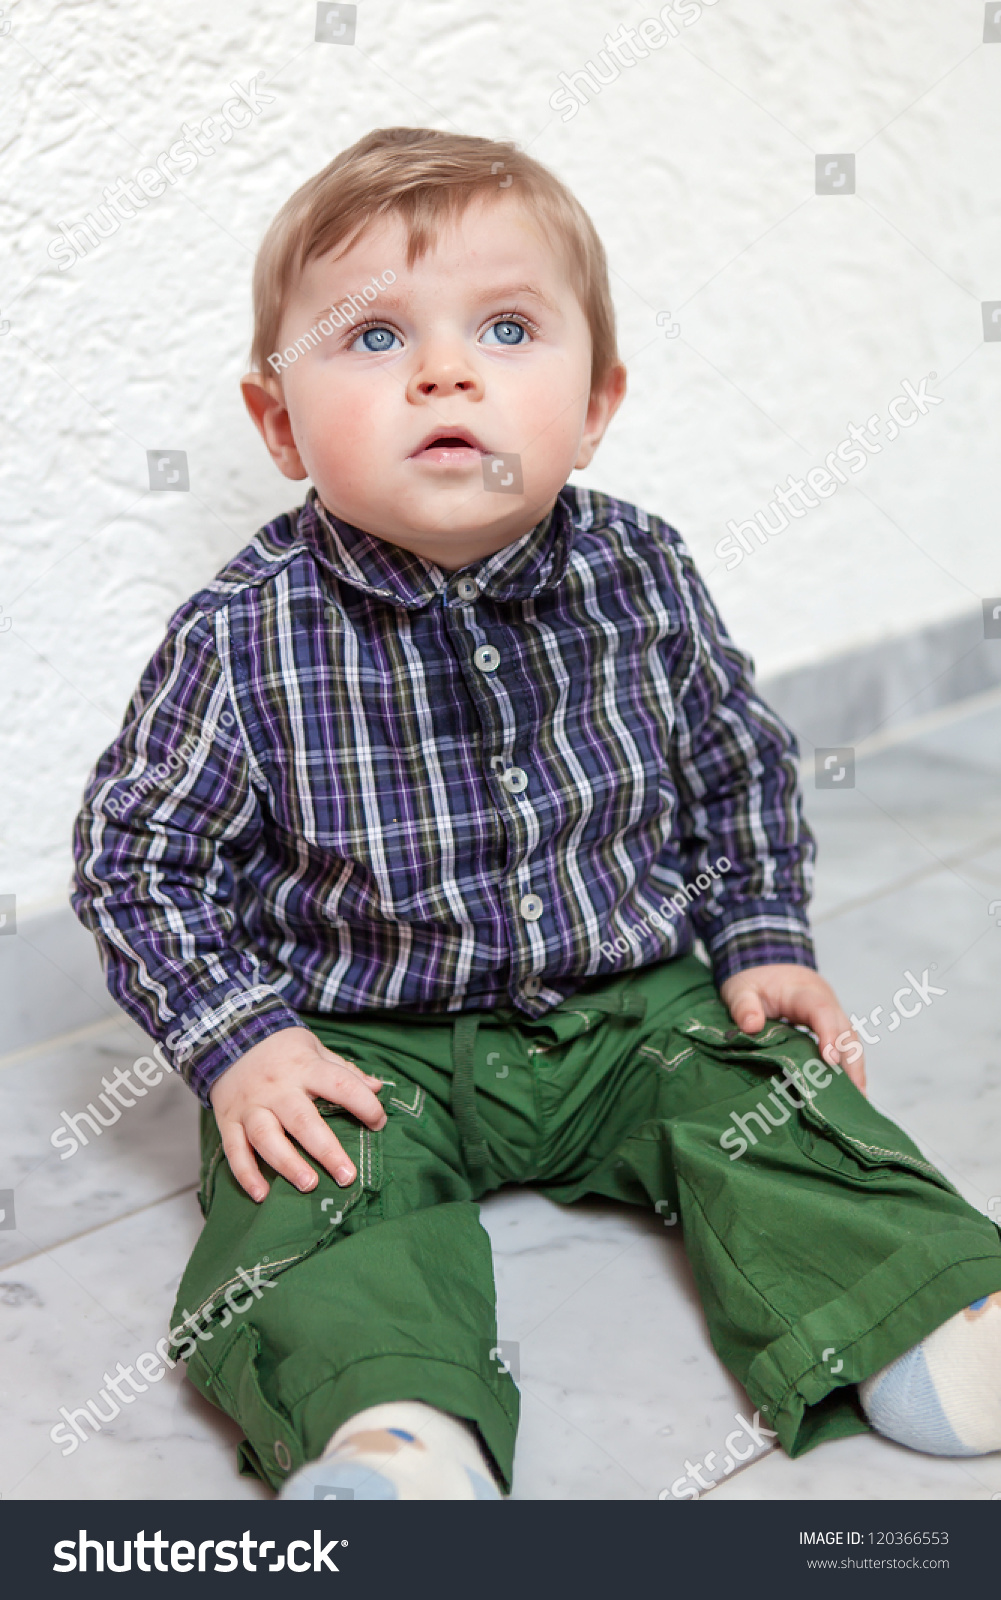 adorable toddler with blue eyes and blond hair indoor